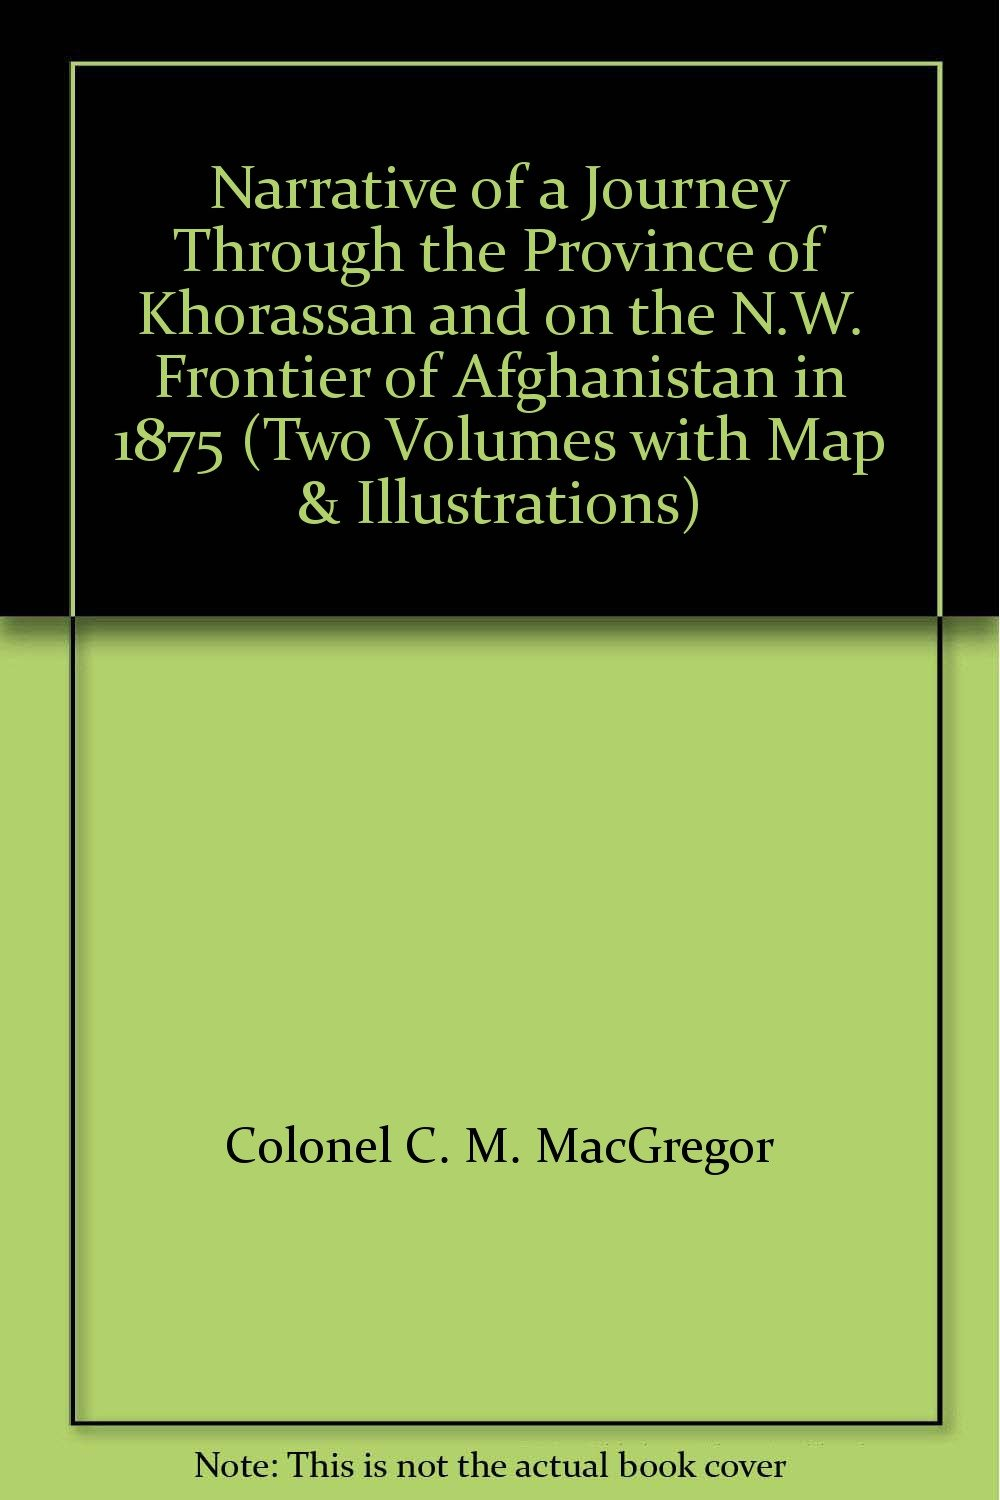 Narrative of a Journey Through the Province of Khorassan and on the N.W. Frontier of Afghanistan in 1875 (Two Volumes with Map & Illustrations)